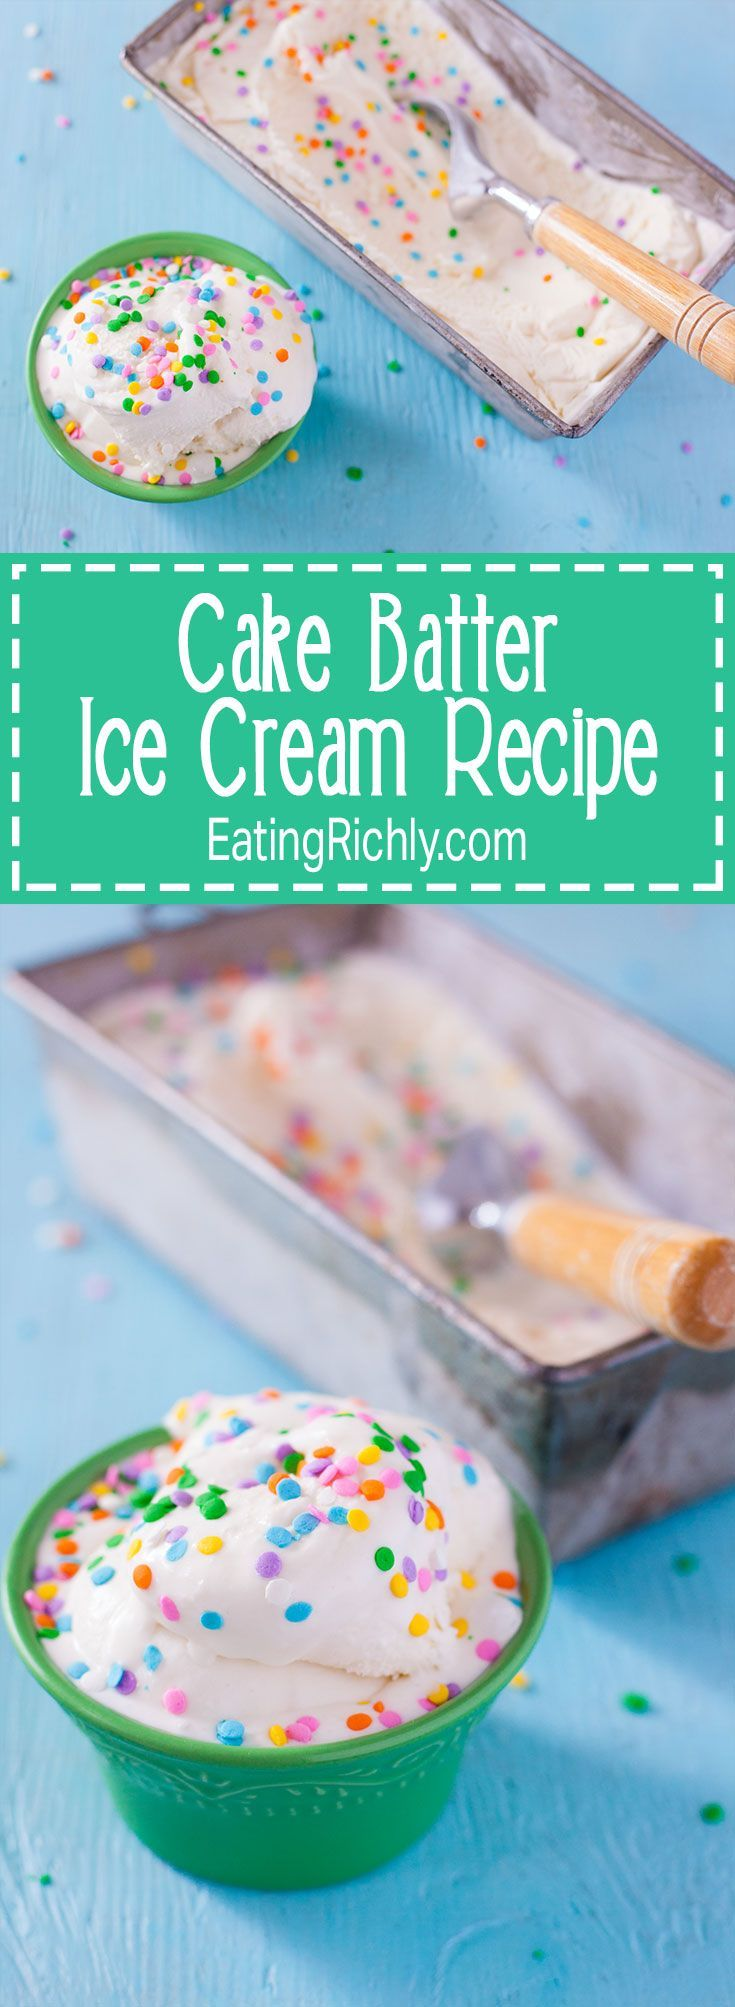 Kids can make this cake batter ice cream recipe because it doesn't require any cooking. Simply mix and churn for amazing ice cream that tastes just like birthday cake! From http://EatingRichly.com